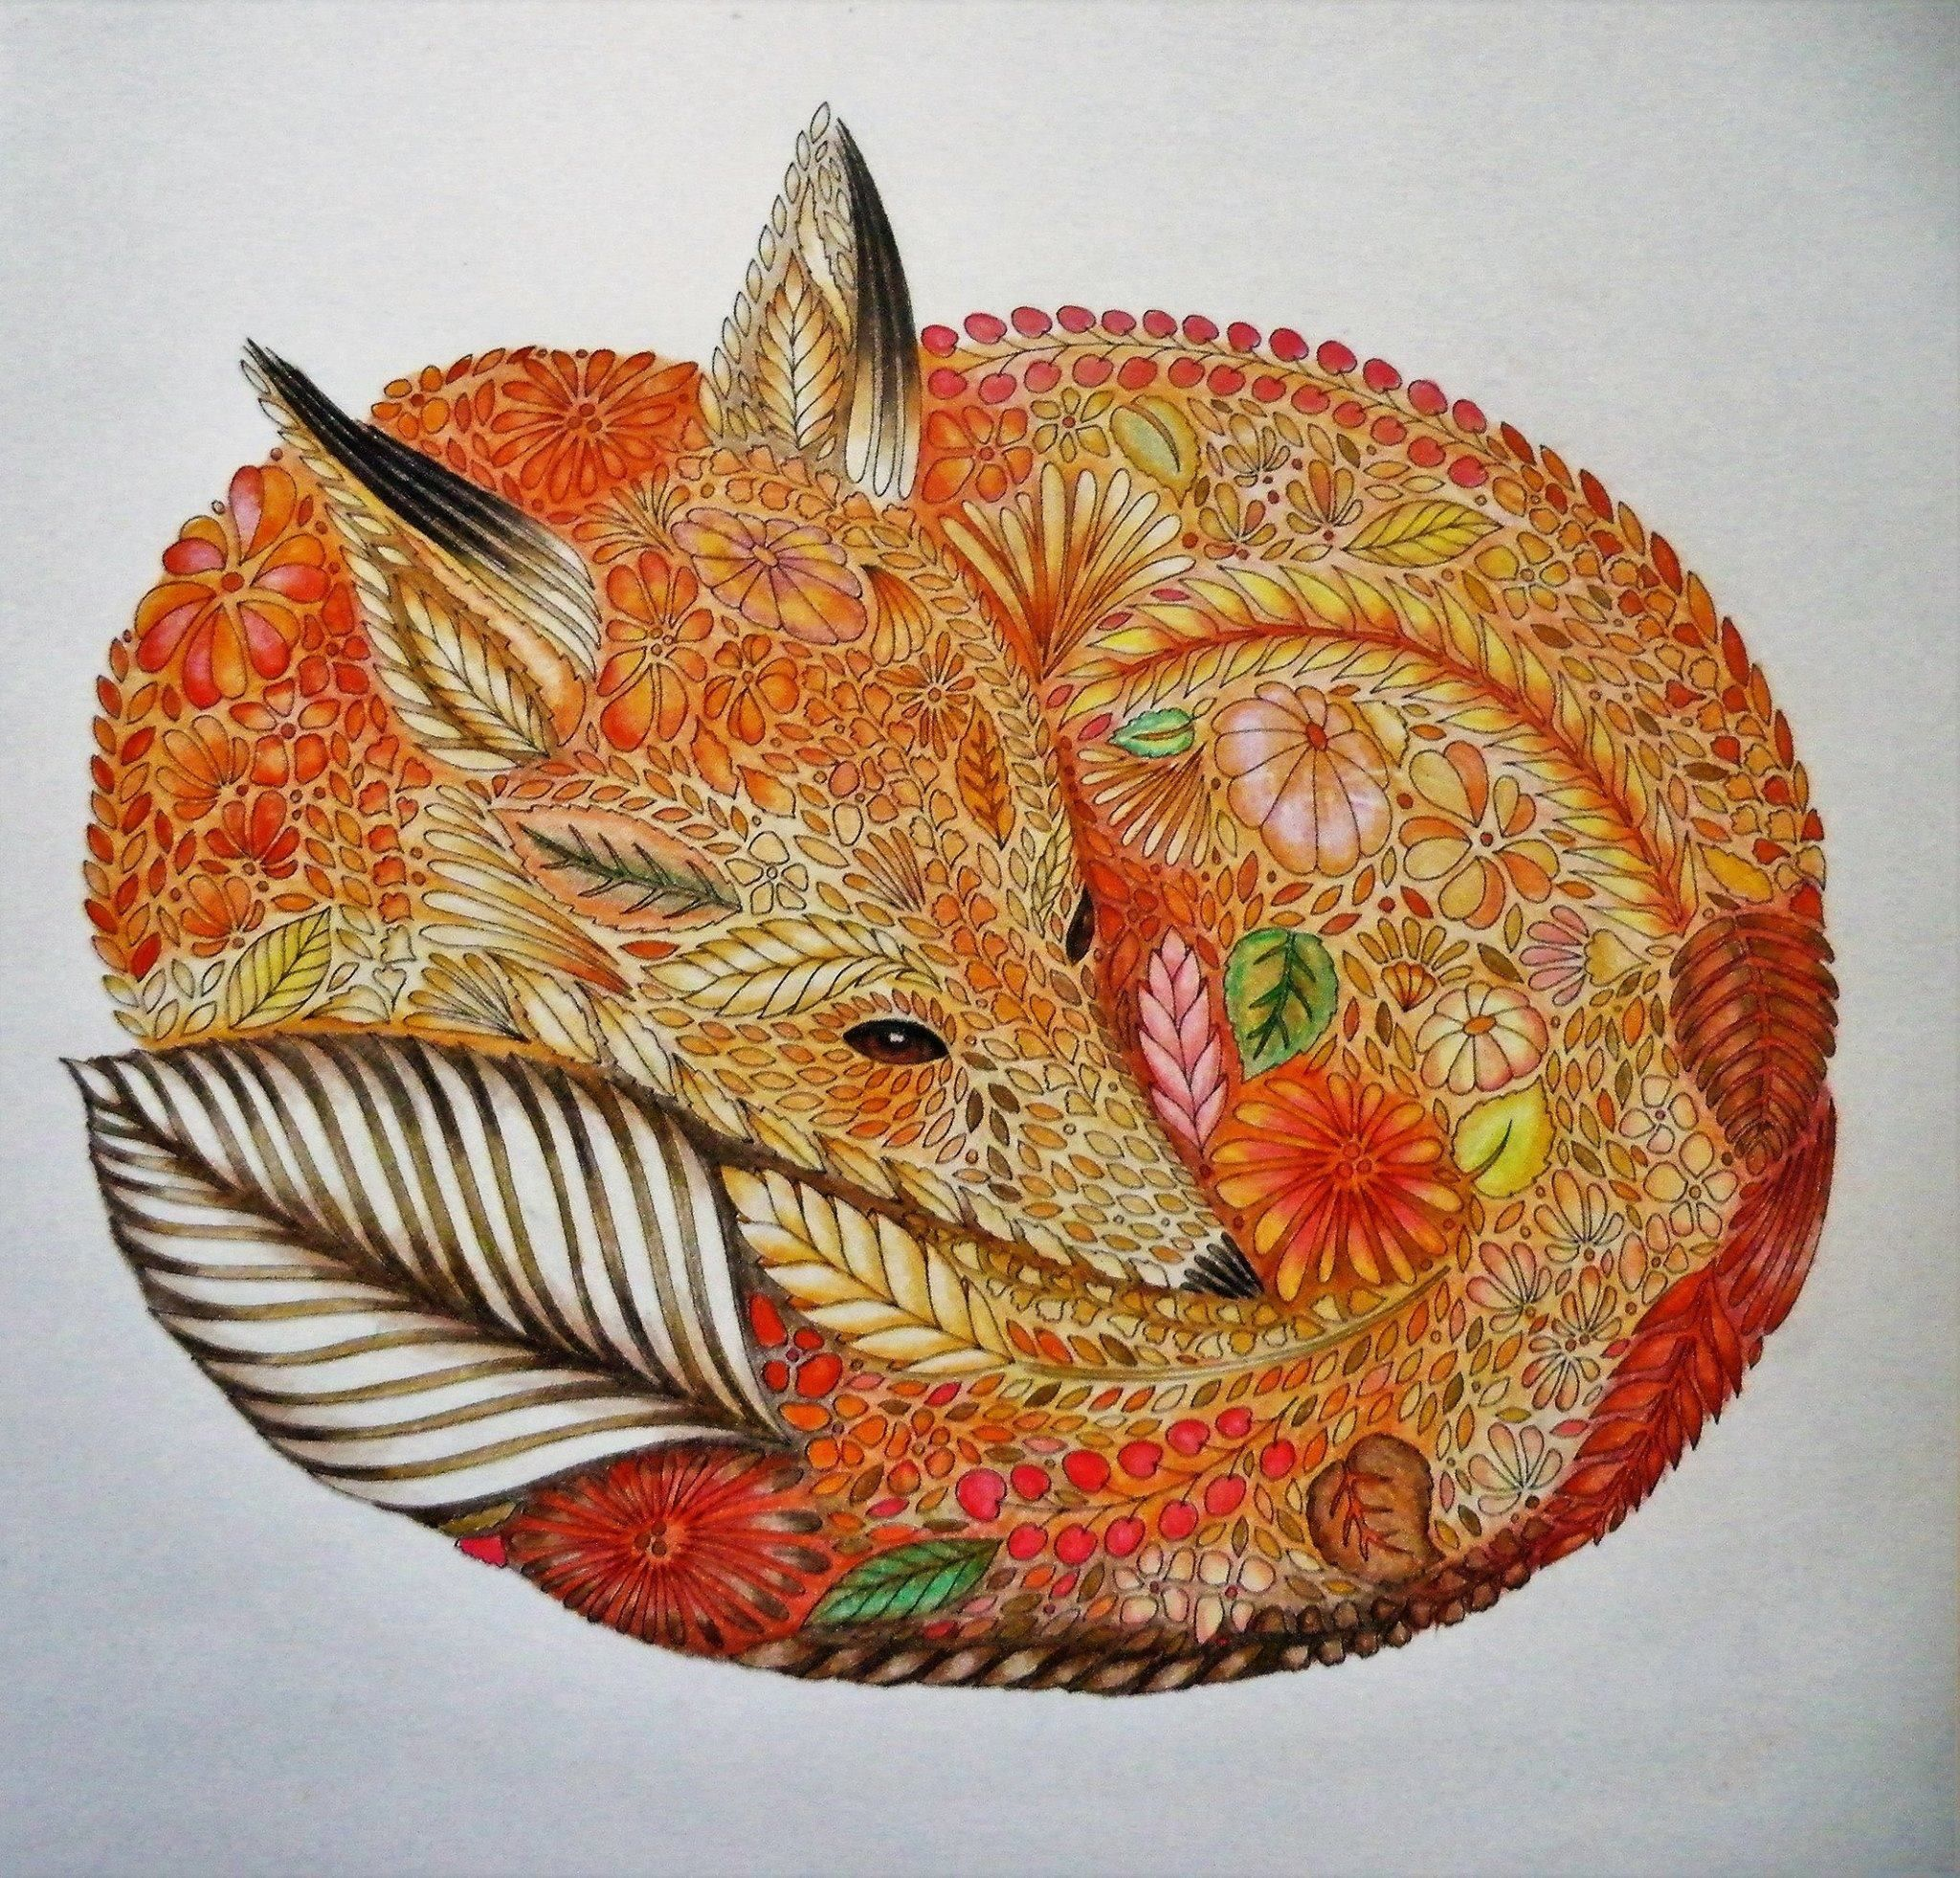 Millie Marotta ColouringColoring BooksFox Coloring PageTattoo